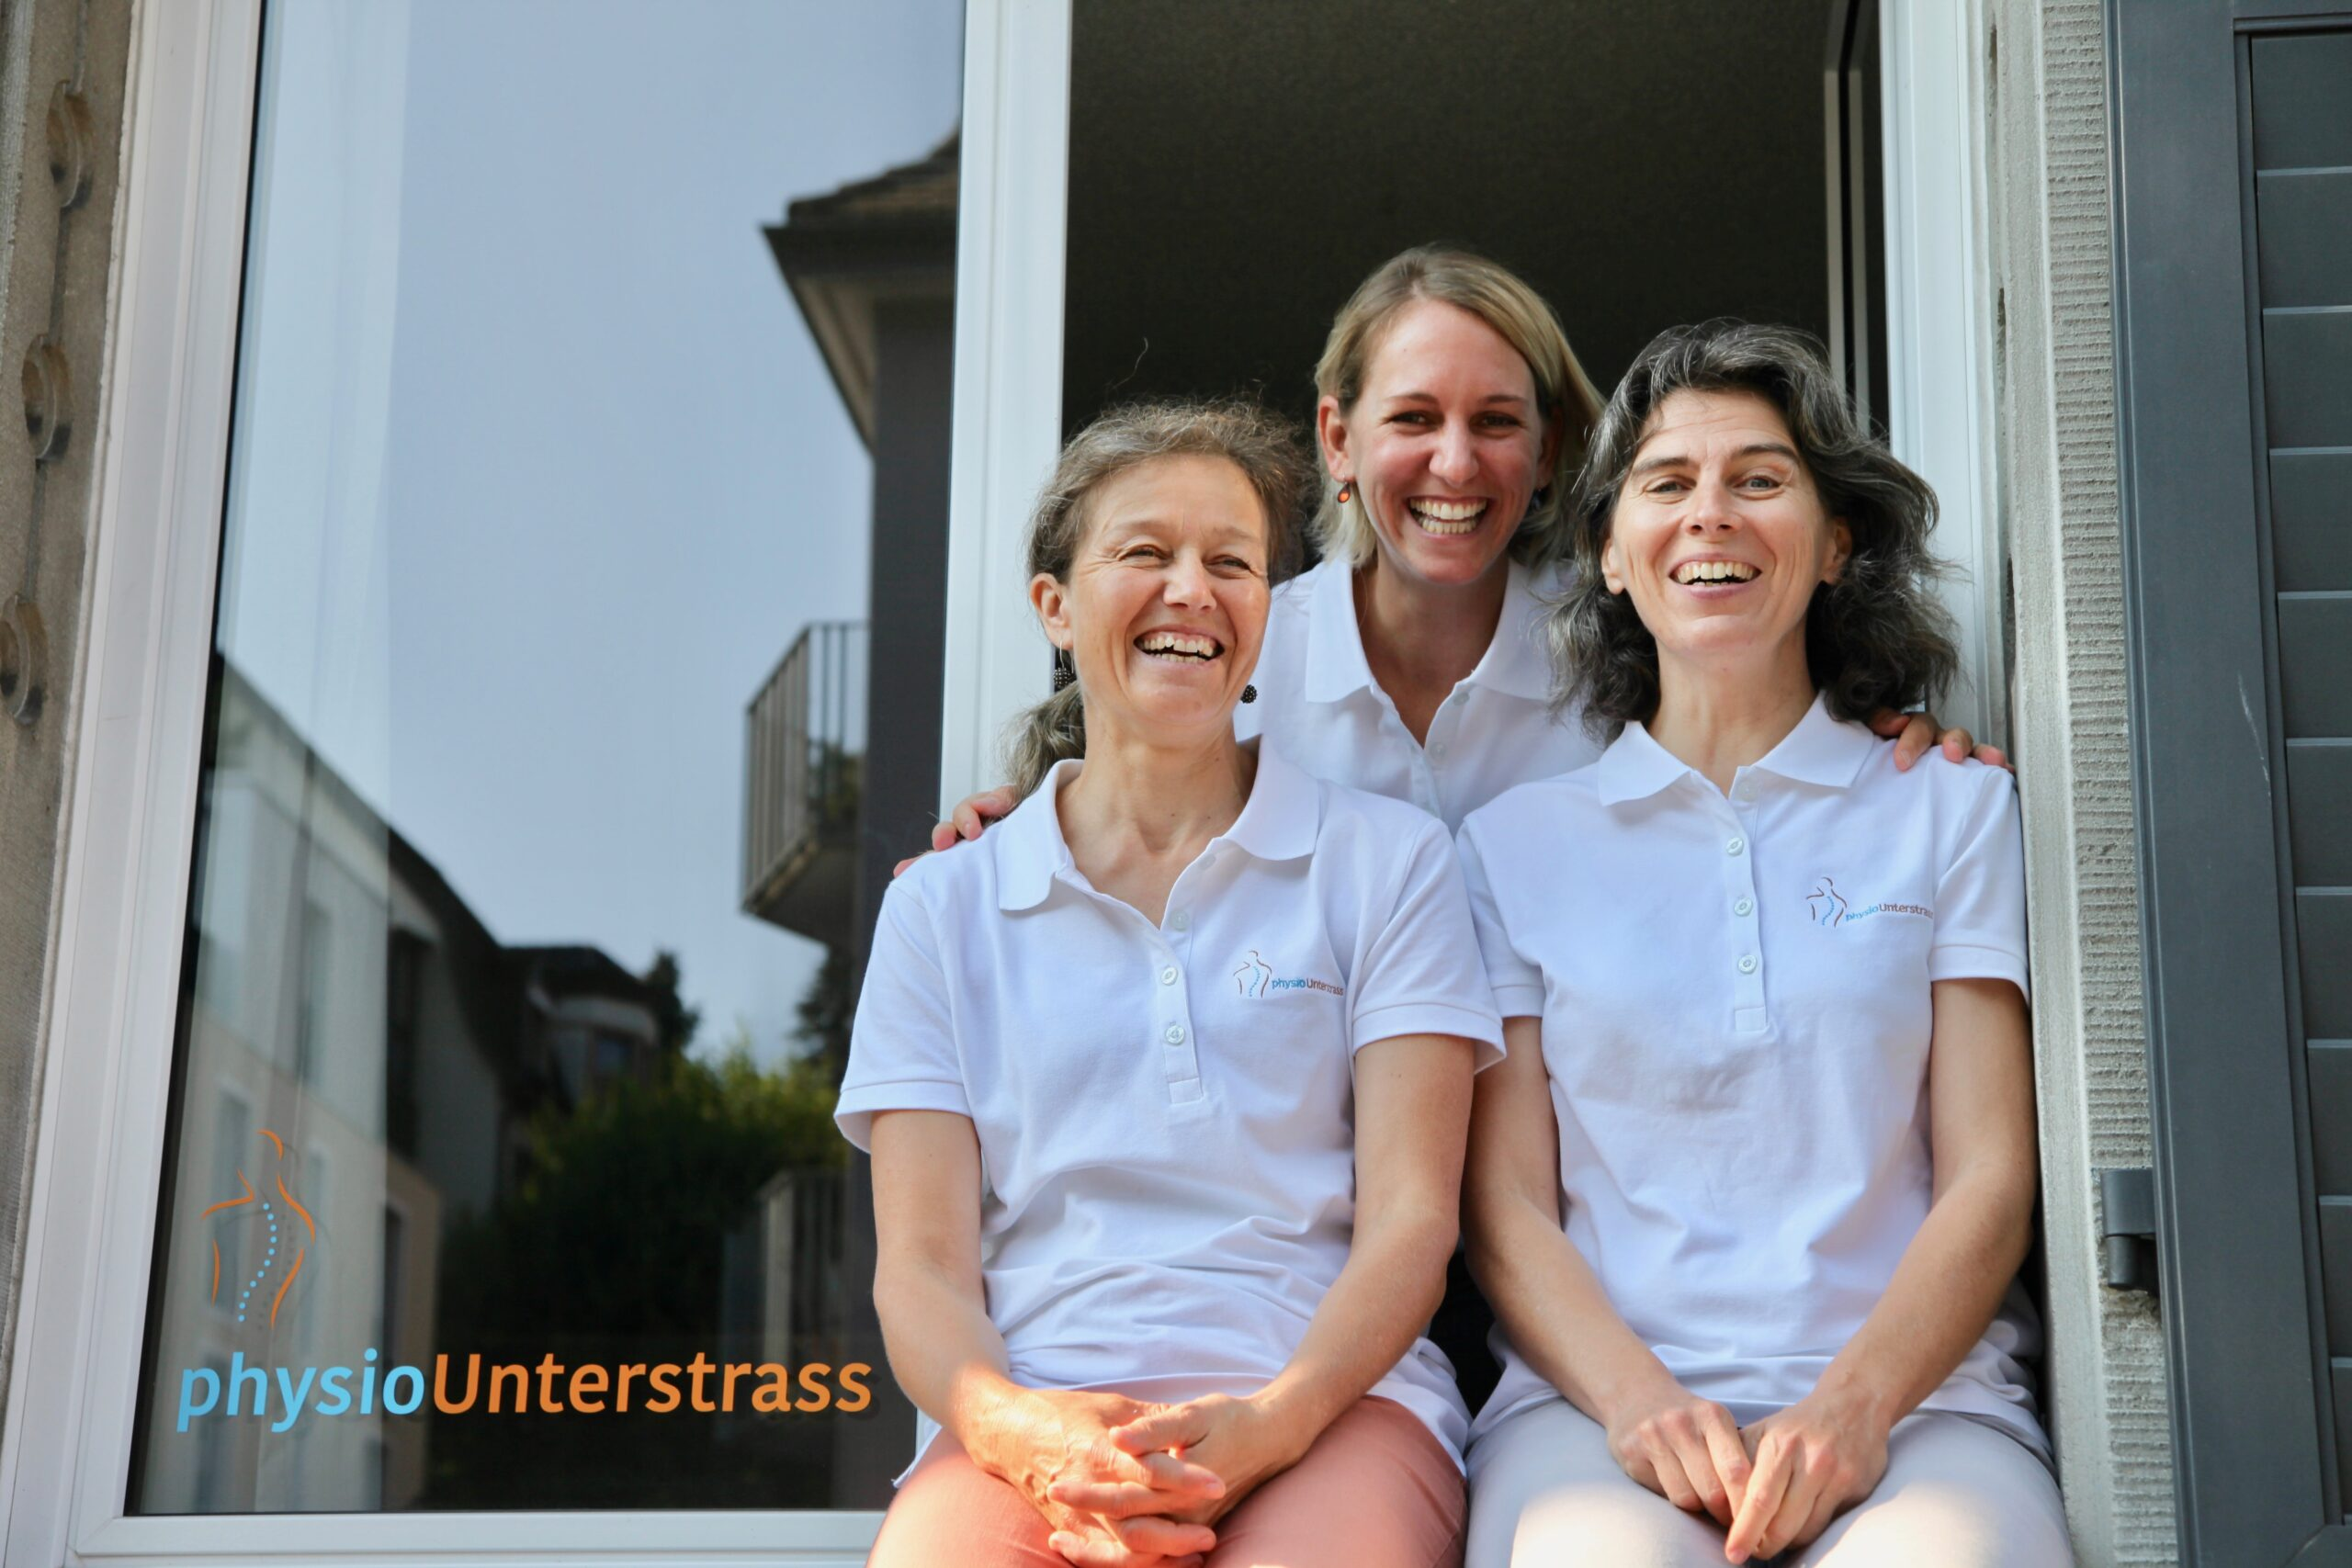 Team Physiopraxis physioUnterstrass in Zürich Unterstrass, Stefi Dalla Torre, Kathrin Grötsch und Cornelia Huber-Pfyffer